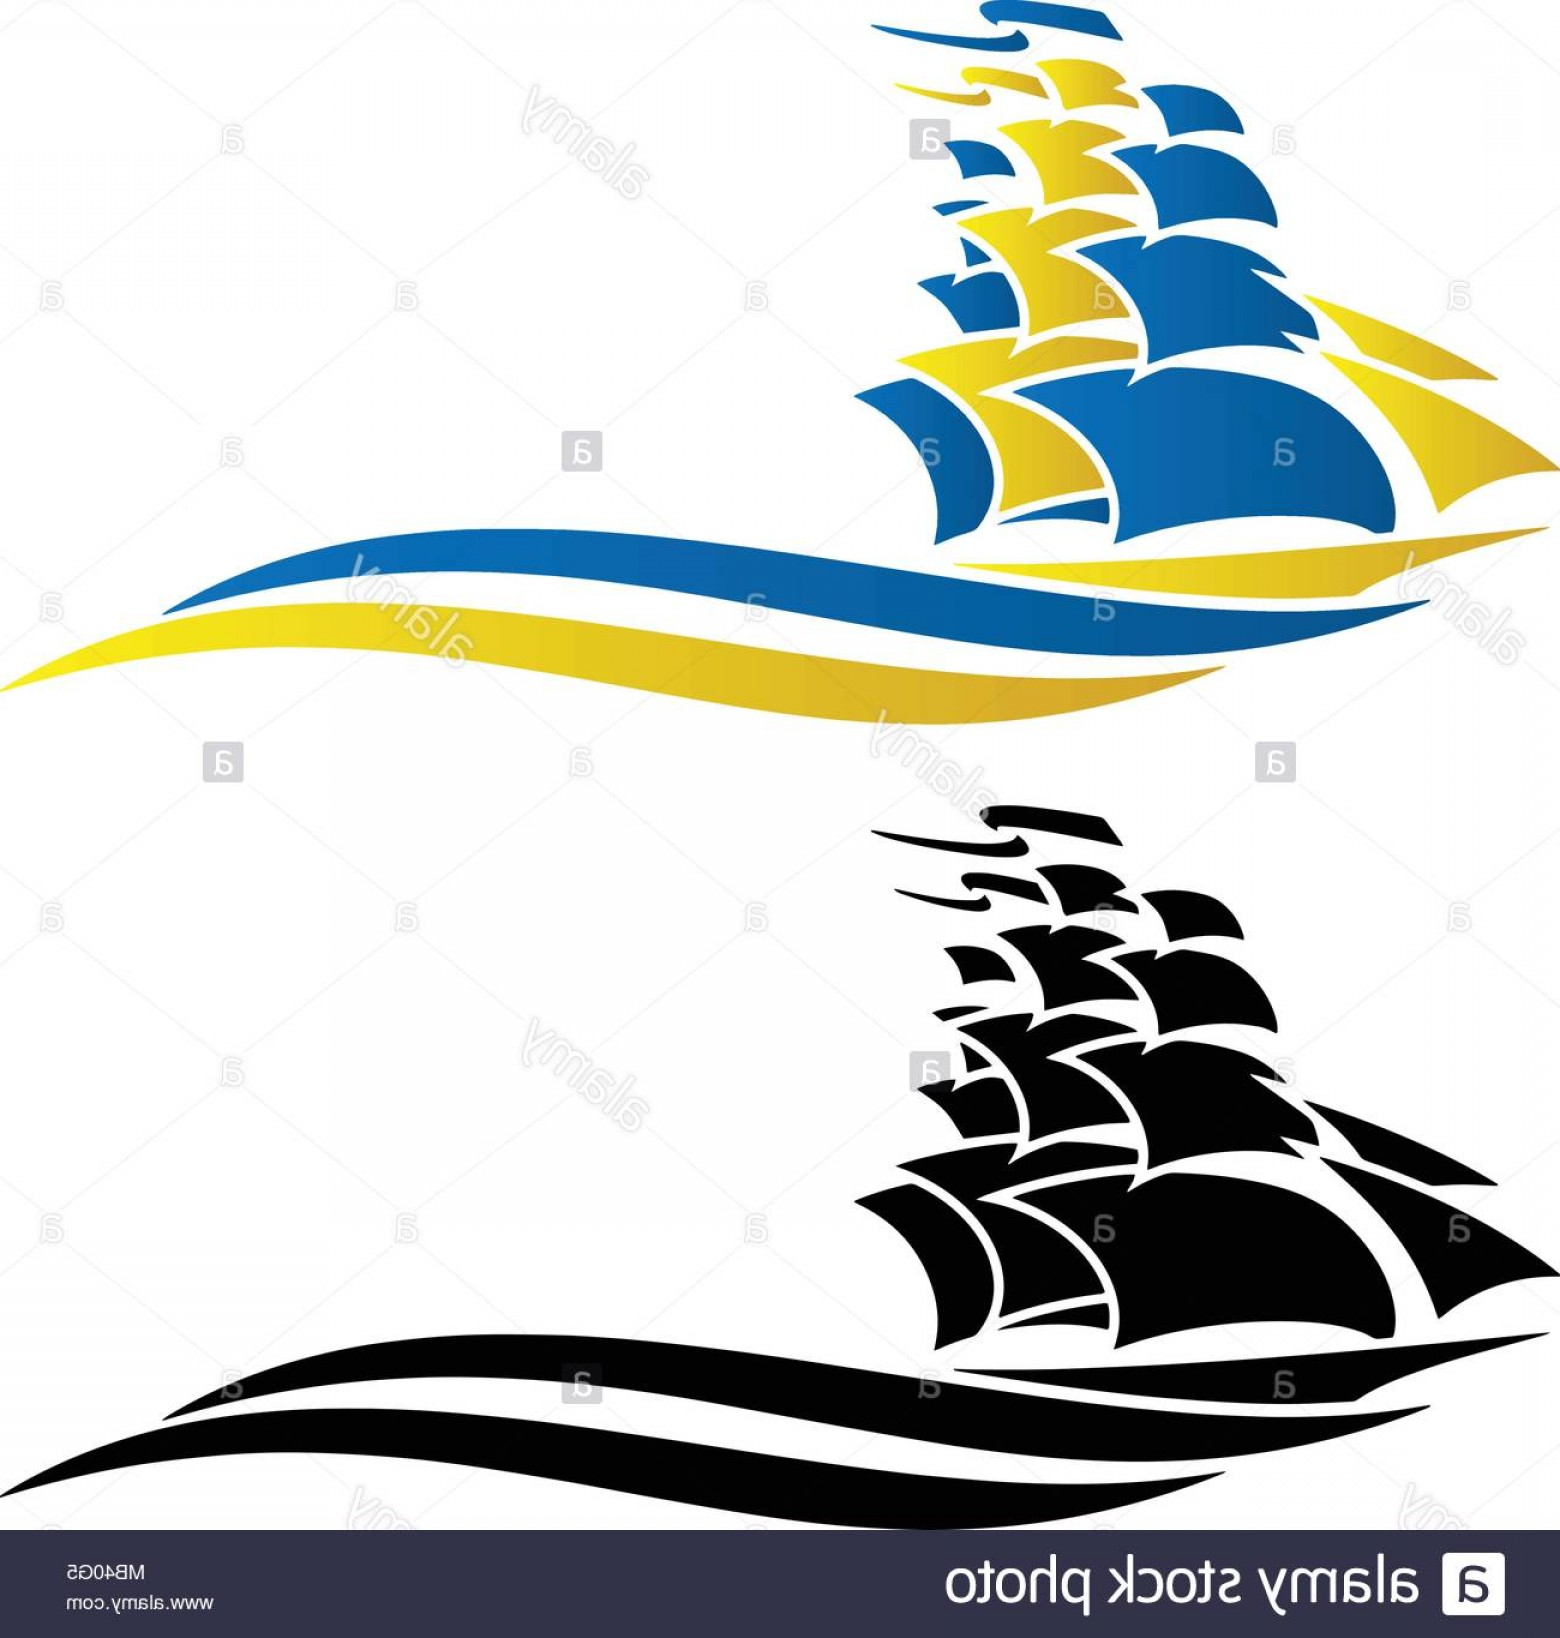 Boat Vector Art Graphics: Sailing Ship Vector Graphic Illustration Image